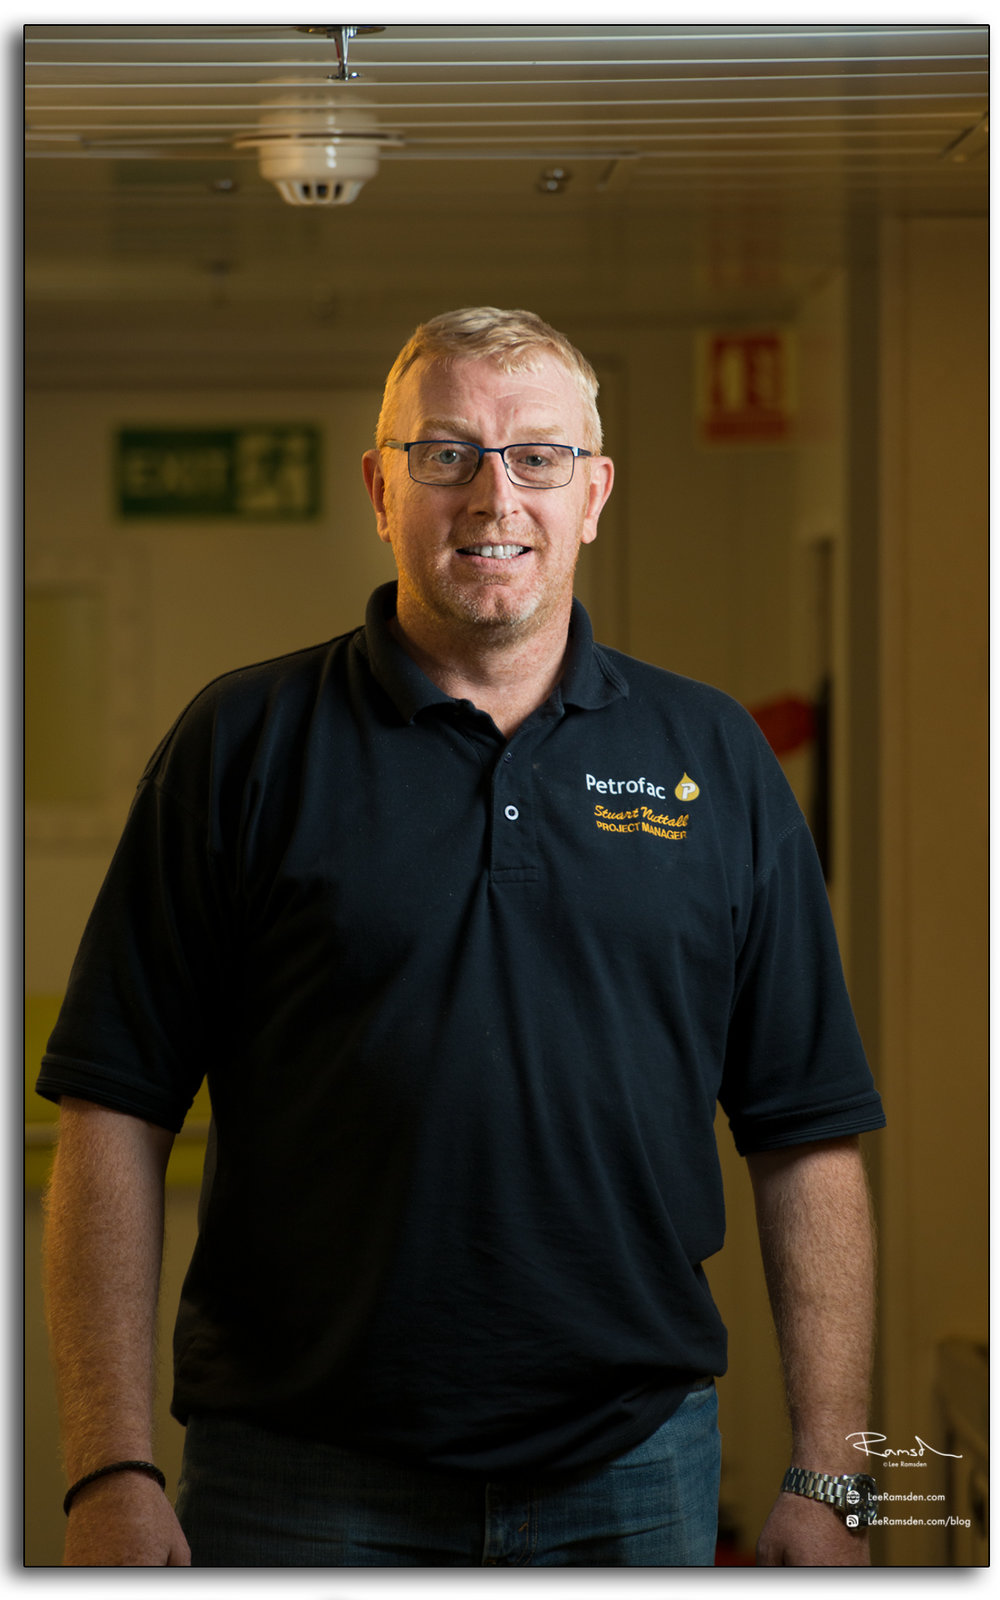 Stuart Nuttall, Petrofac, Project Manager, offshore installation manager, north sea, BP Miller, OIM, decommissioning, photography taken by, Lee Ramsden